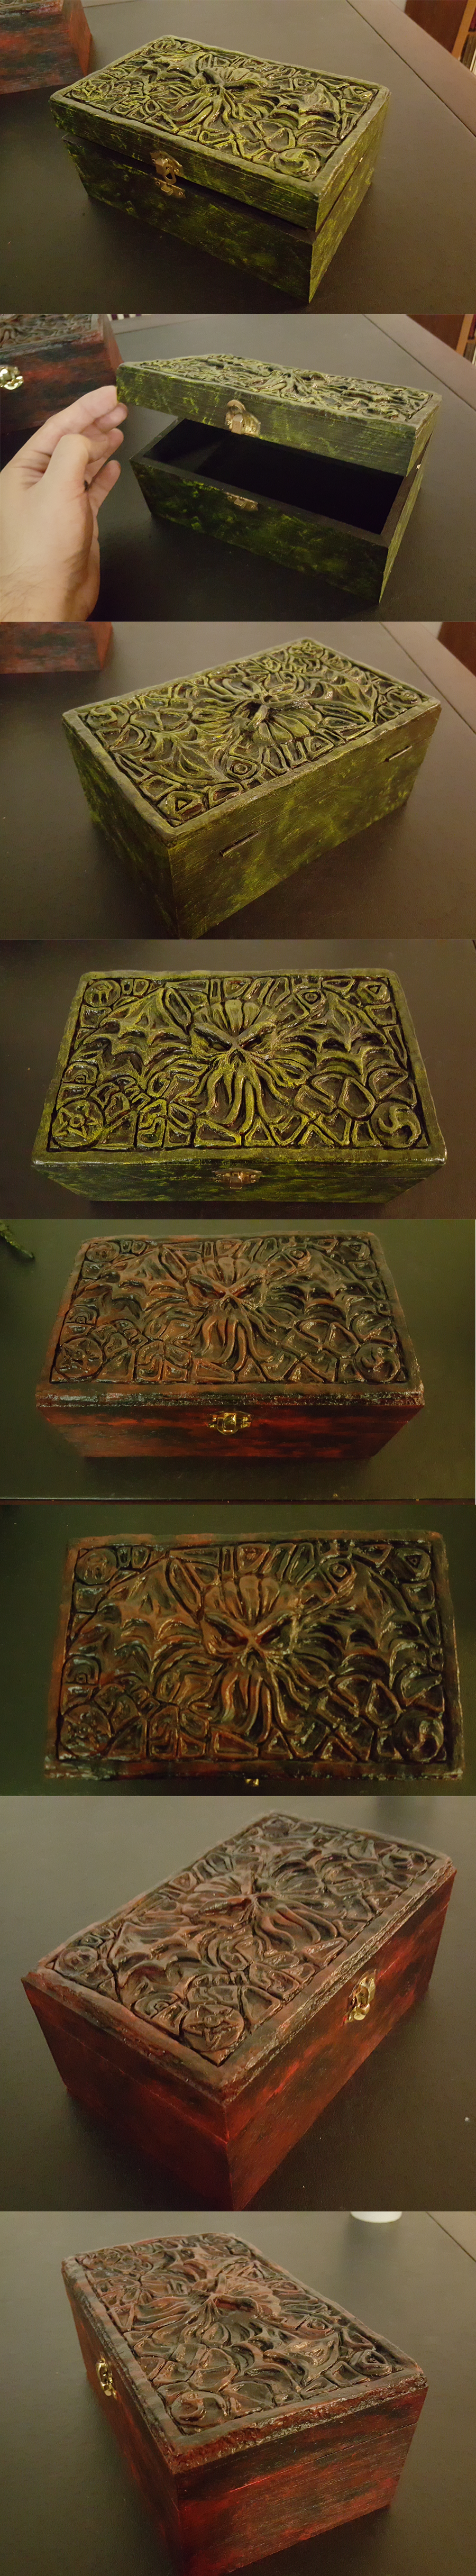 The Ark of Cthulhu